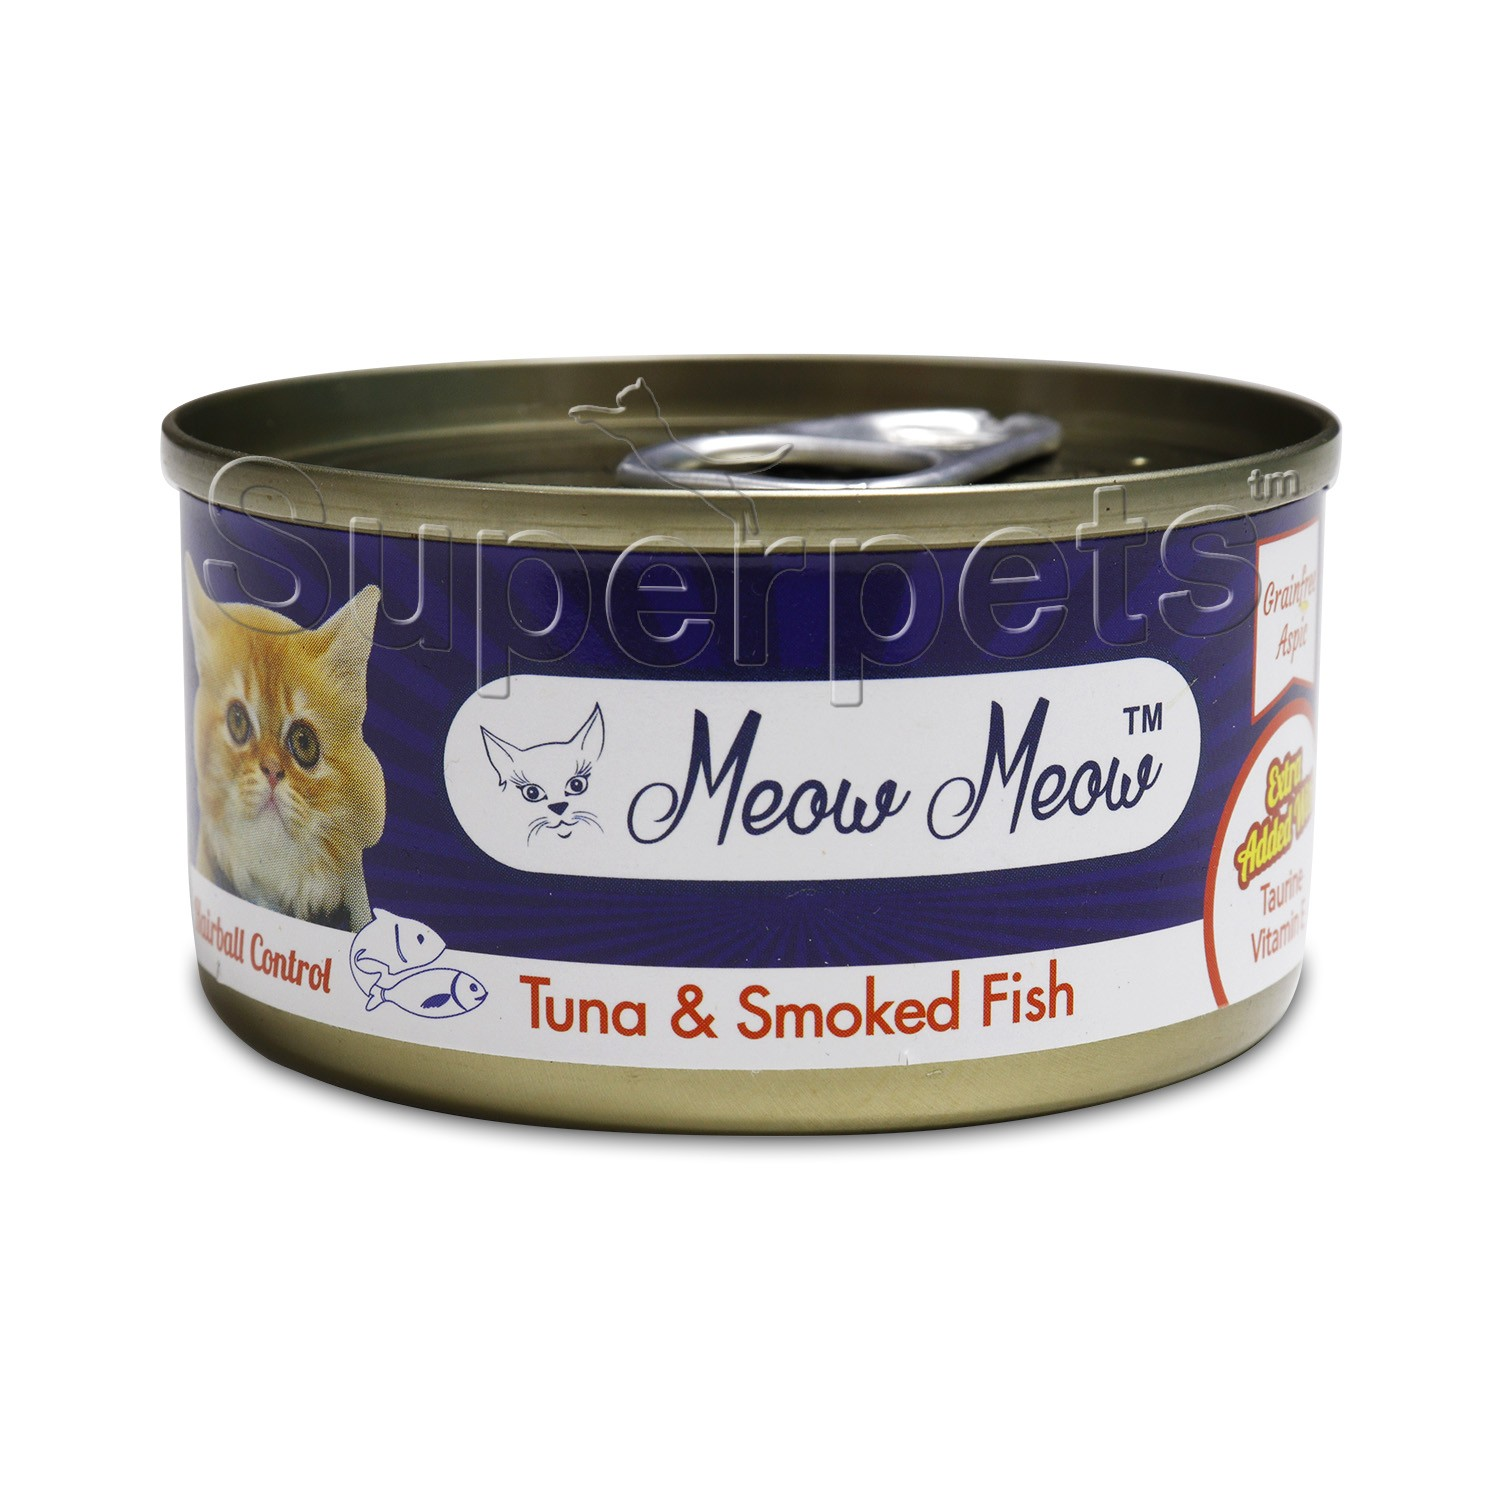 Meow Meow – Tuna & Smoked Fish – Grain Free 80g